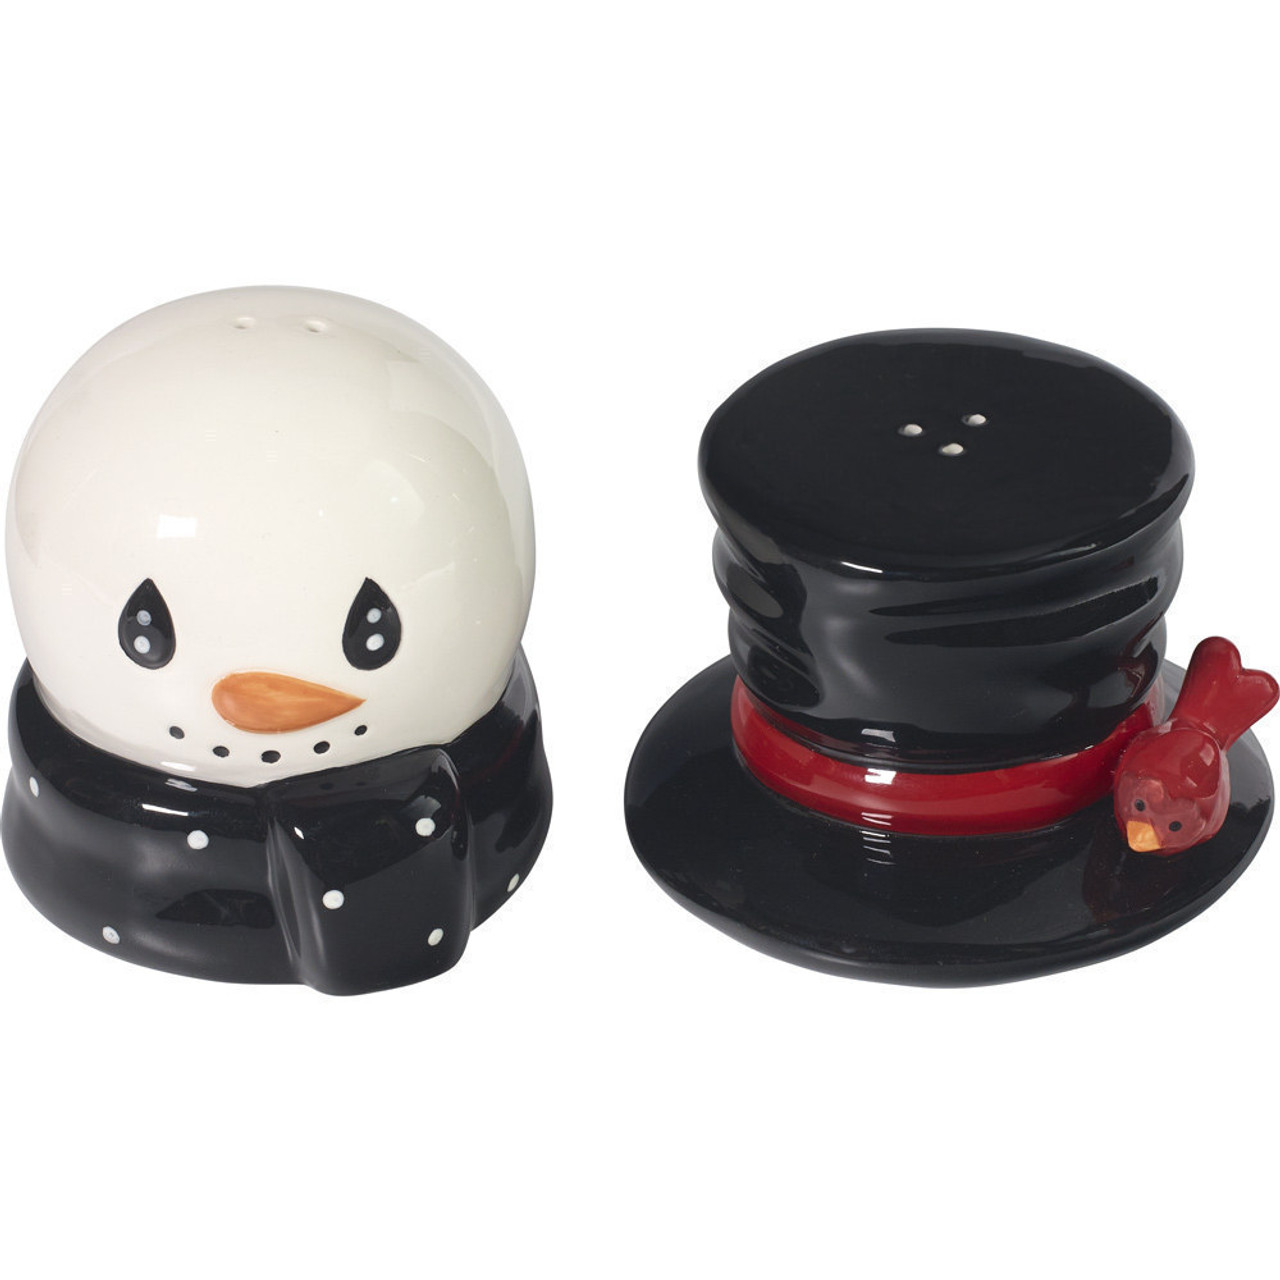 Christmas Gifts Snow Much Fun Snowman Salt And Pepper Shakers Ceramic 171474